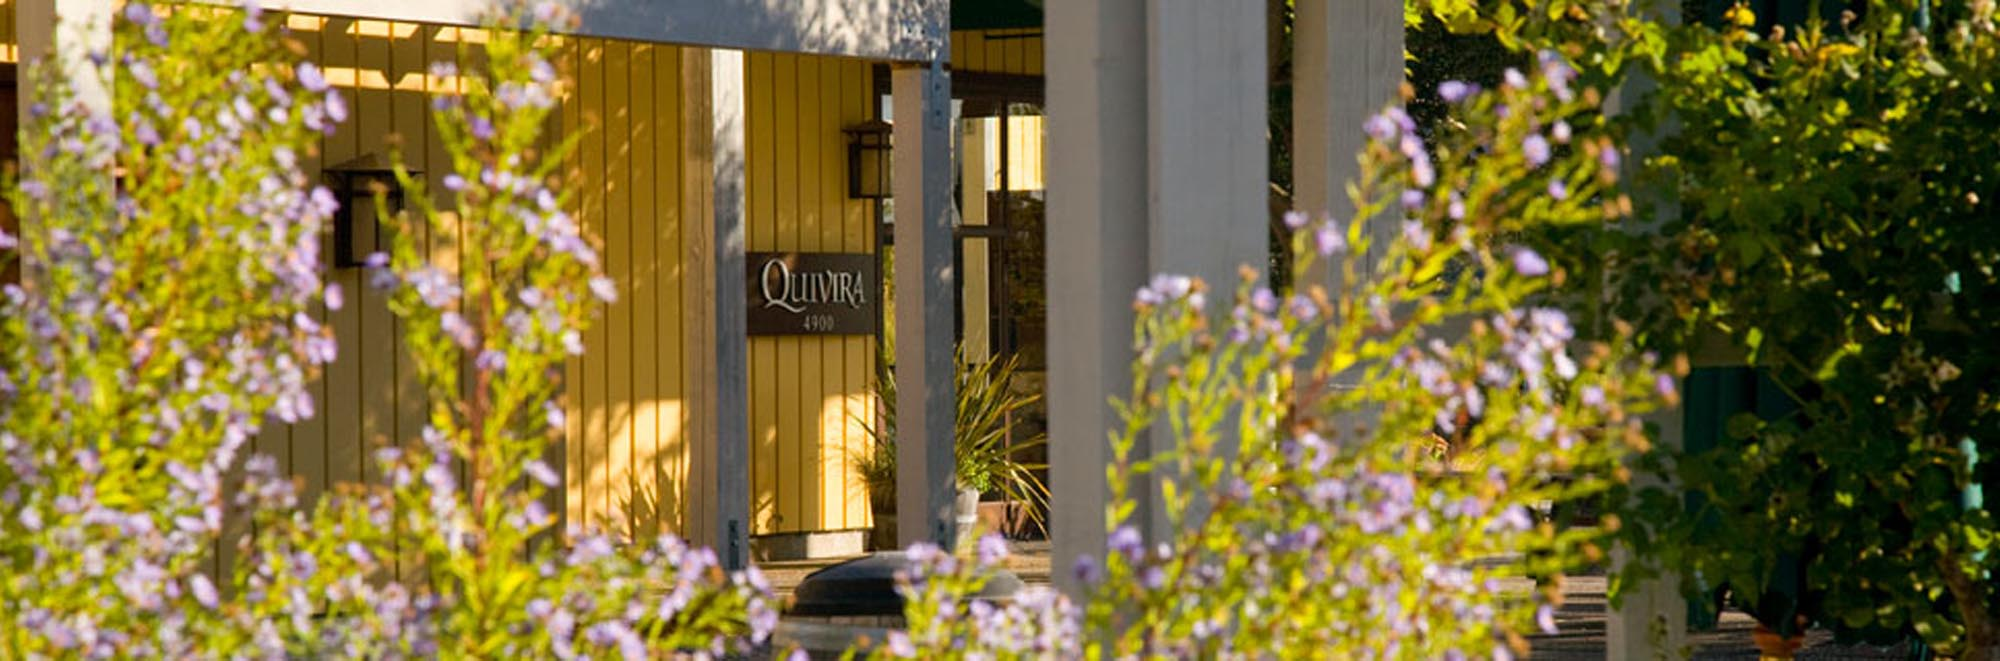 A picture of flowers with the Quivira sign in the background